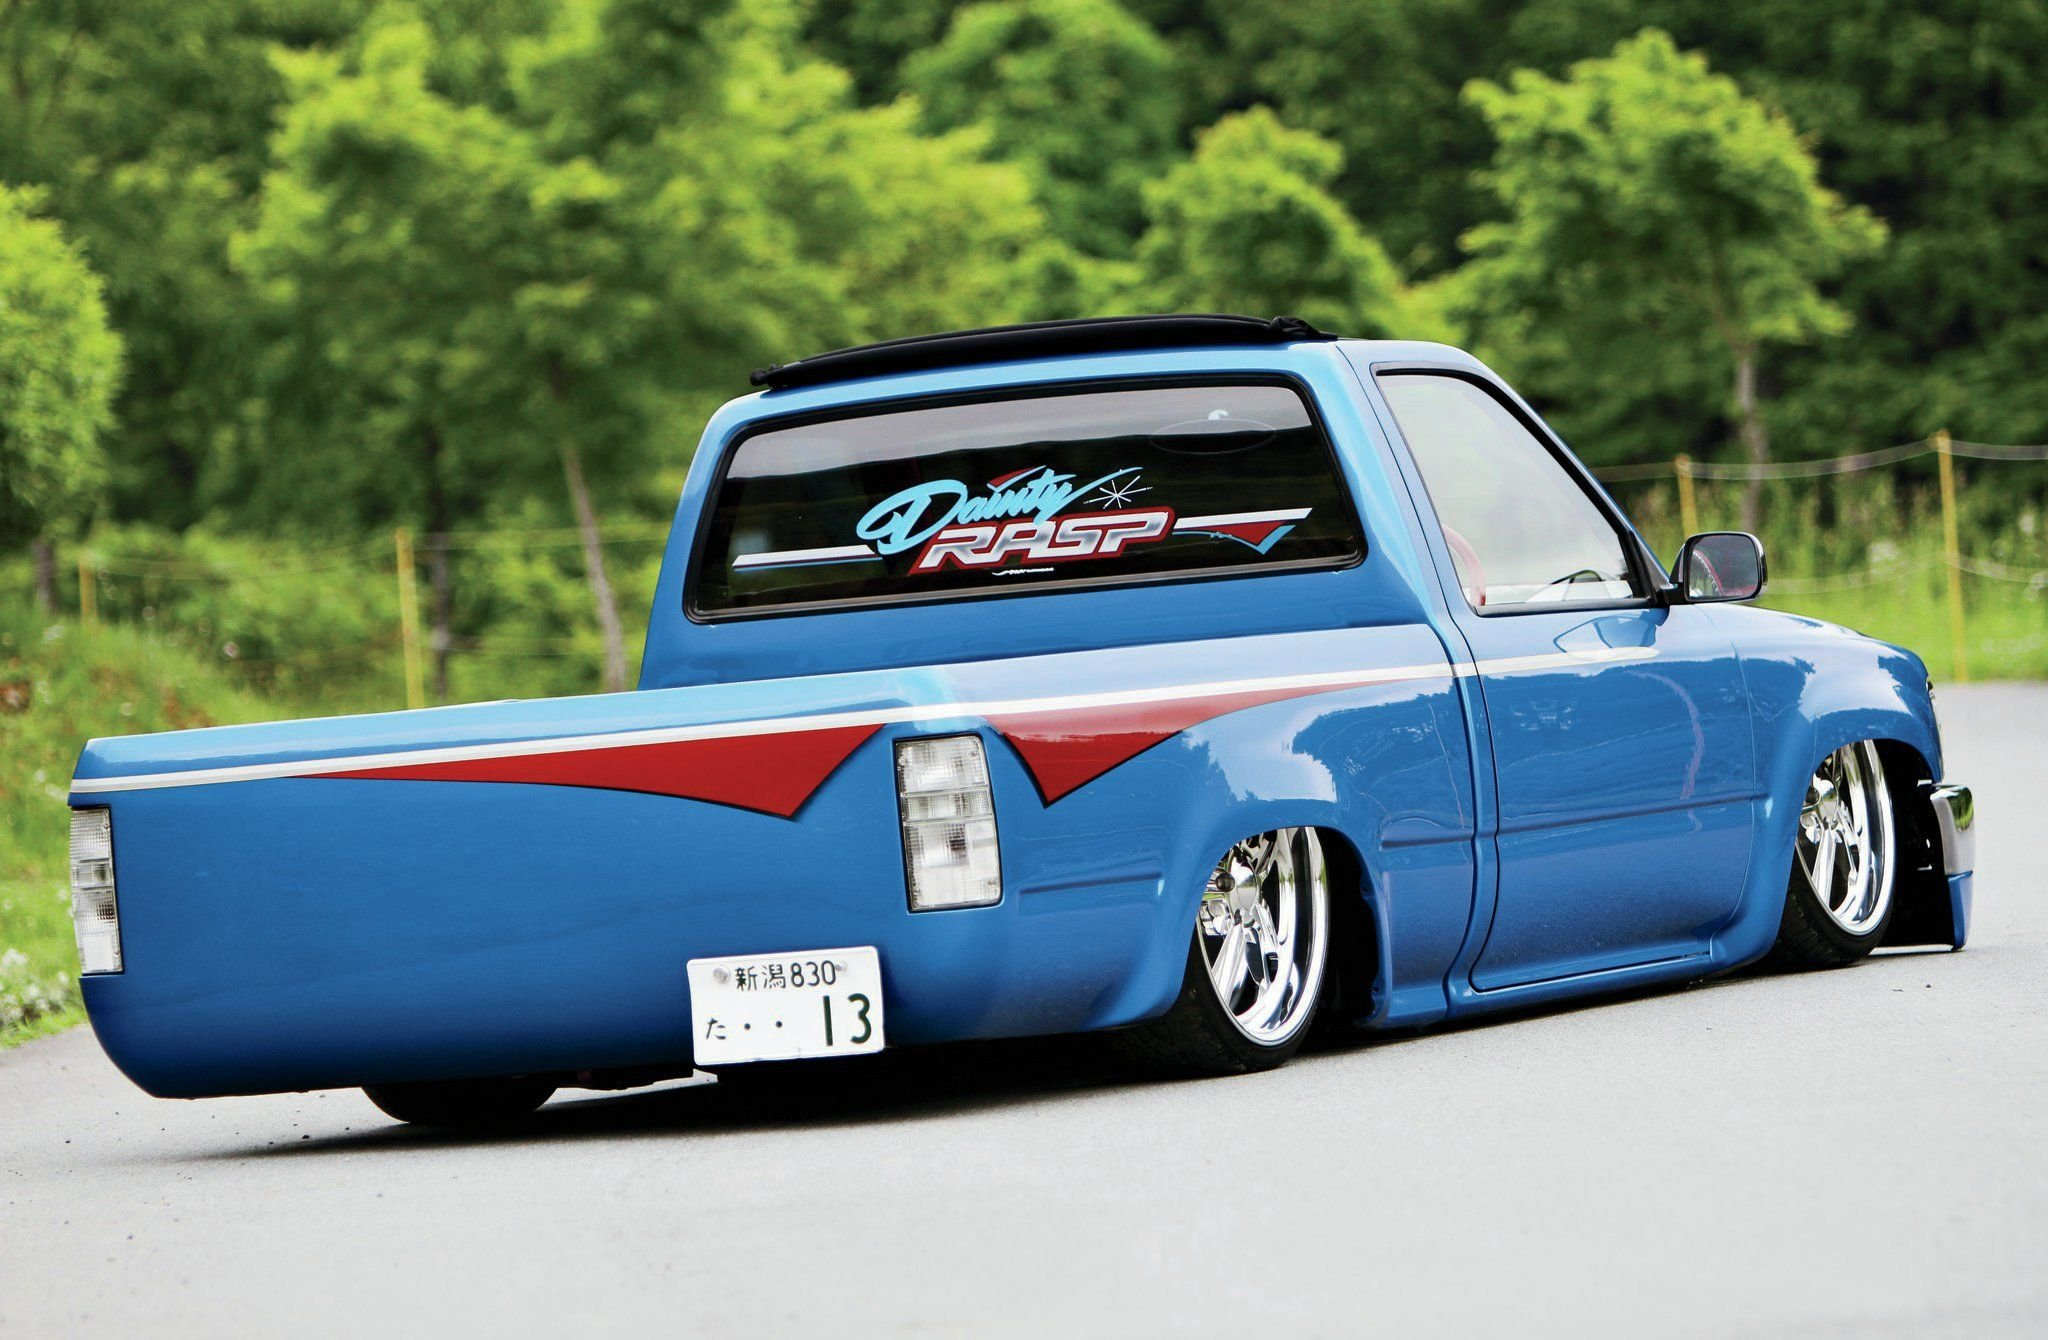 1996 toyota hilux pickup custom tuning lowrider wallpaper 2048x1340 880315 wallpaperup. Black Bedroom Furniture Sets. Home Design Ideas